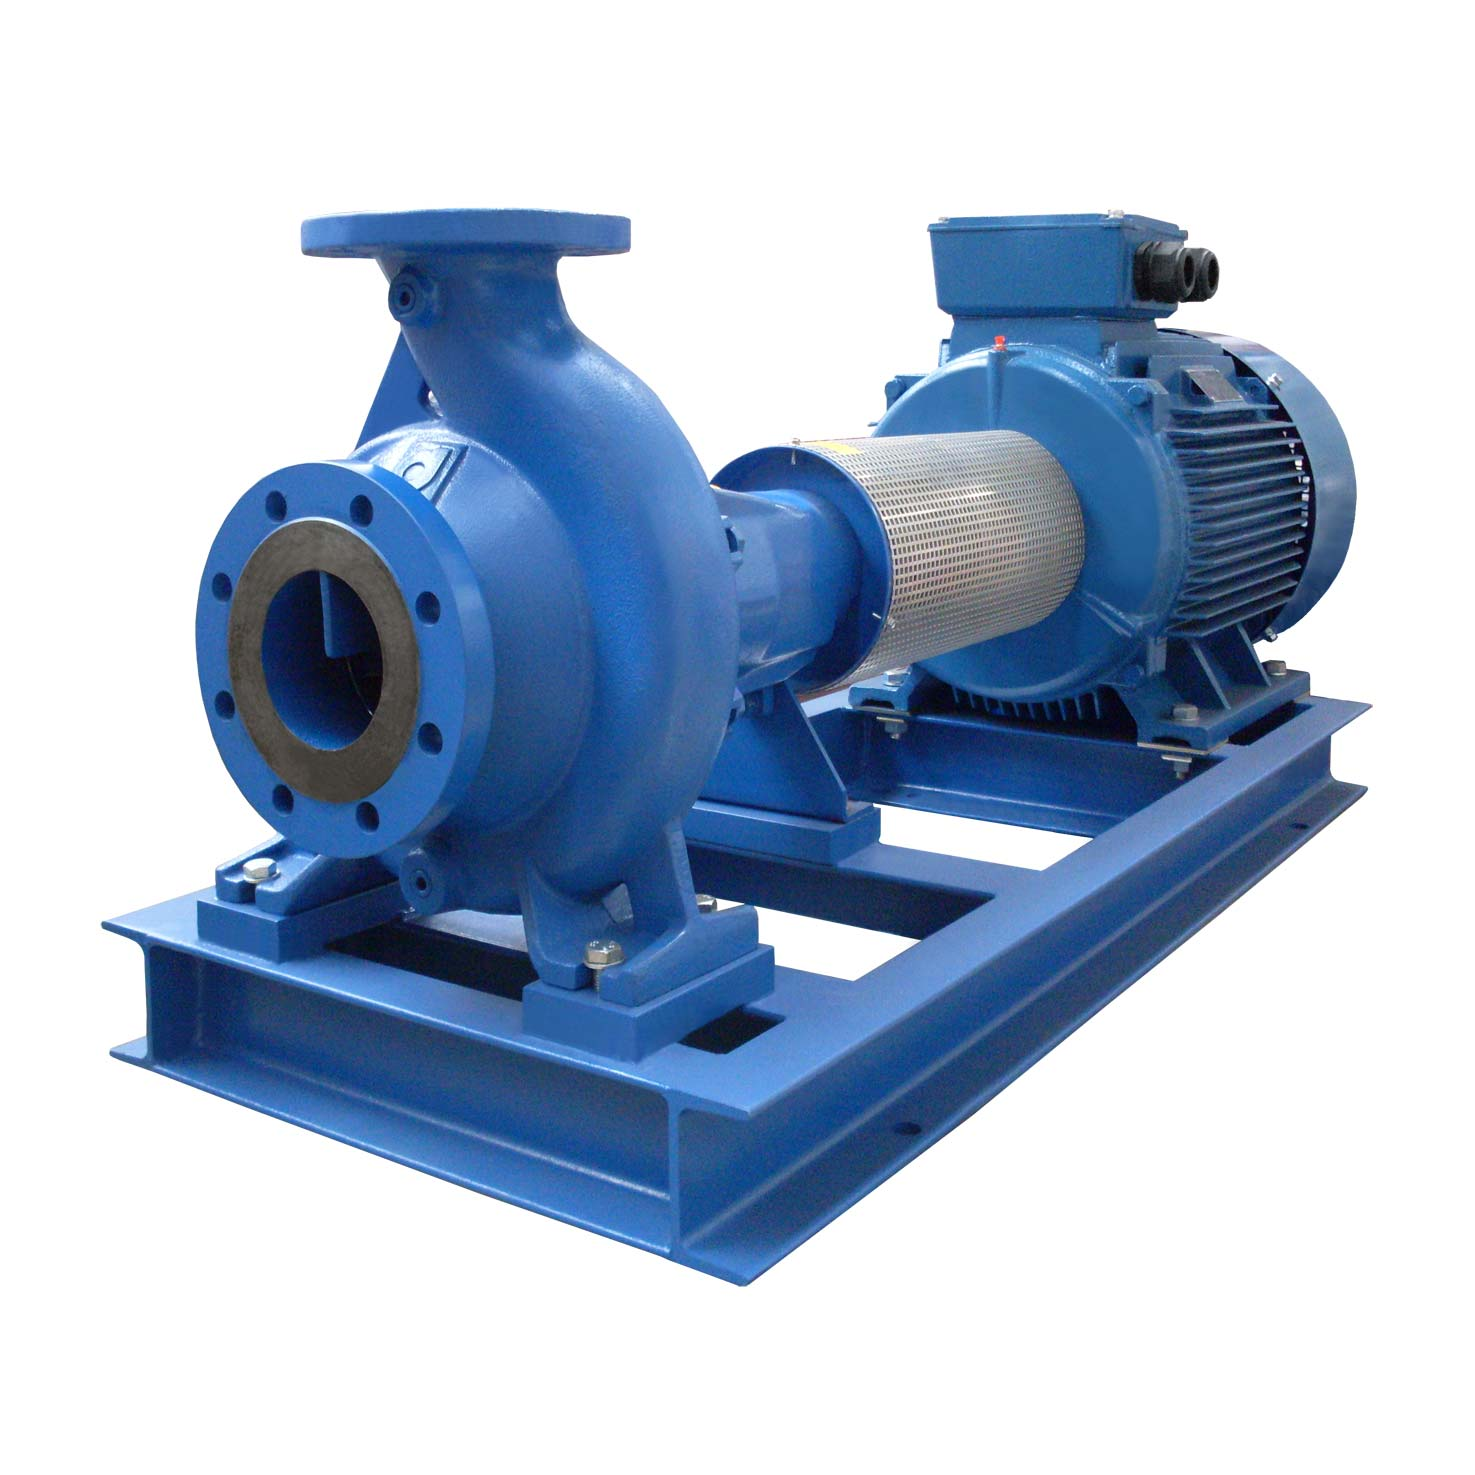 EN 733 EFAFLU HORIZONTAL CENTRIFUGAL PUMPS